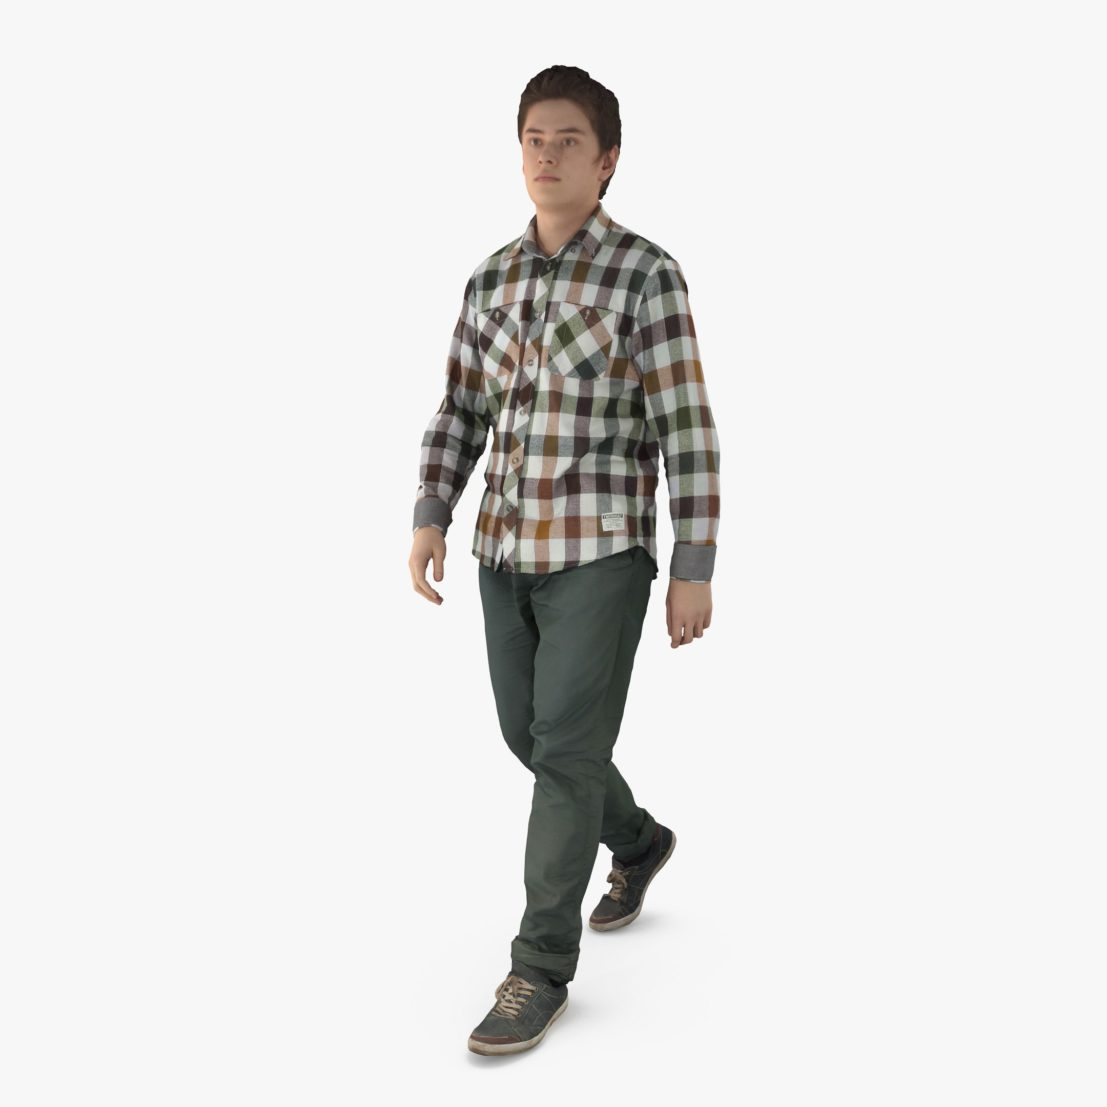 Urban Man Walking 3D Model | 3DTree Scanning Studio